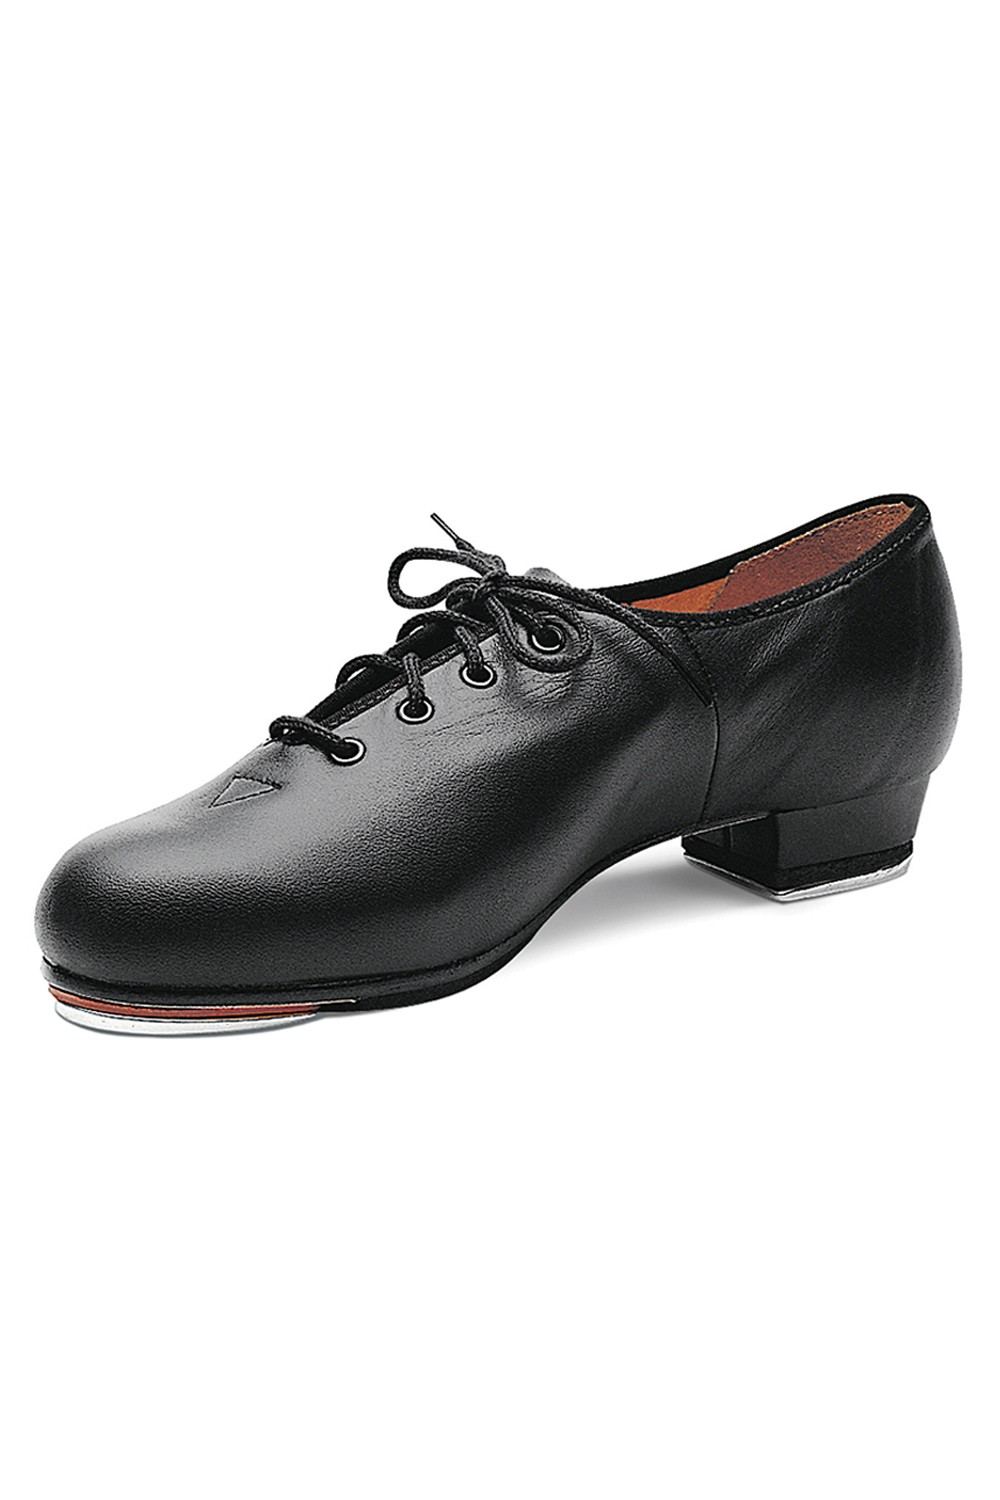 Jazz Tip Tap - Uomo Men's Tap Shoes